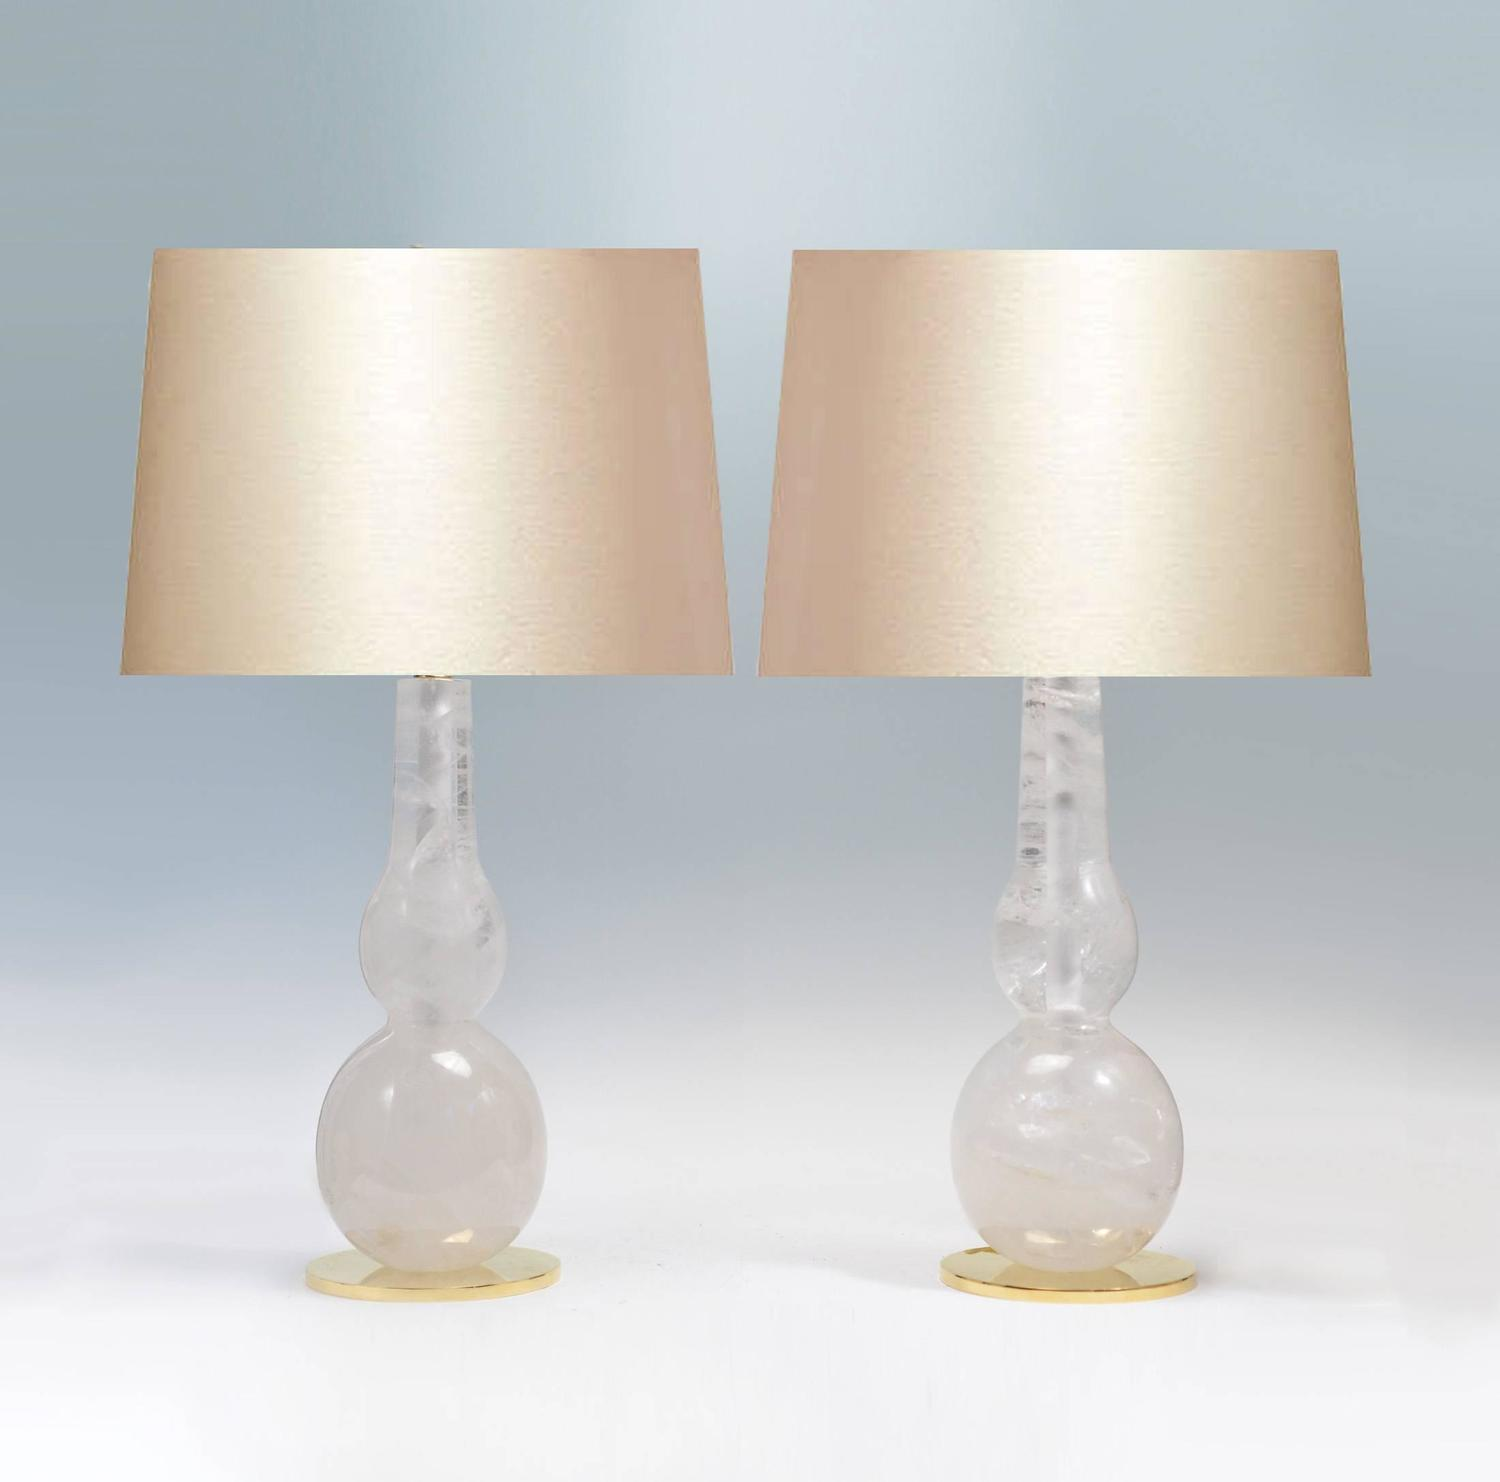 fine carved double gourd rock crystal quartz lamps for sale at 1stdibs. Black Bedroom Furniture Sets. Home Design Ideas